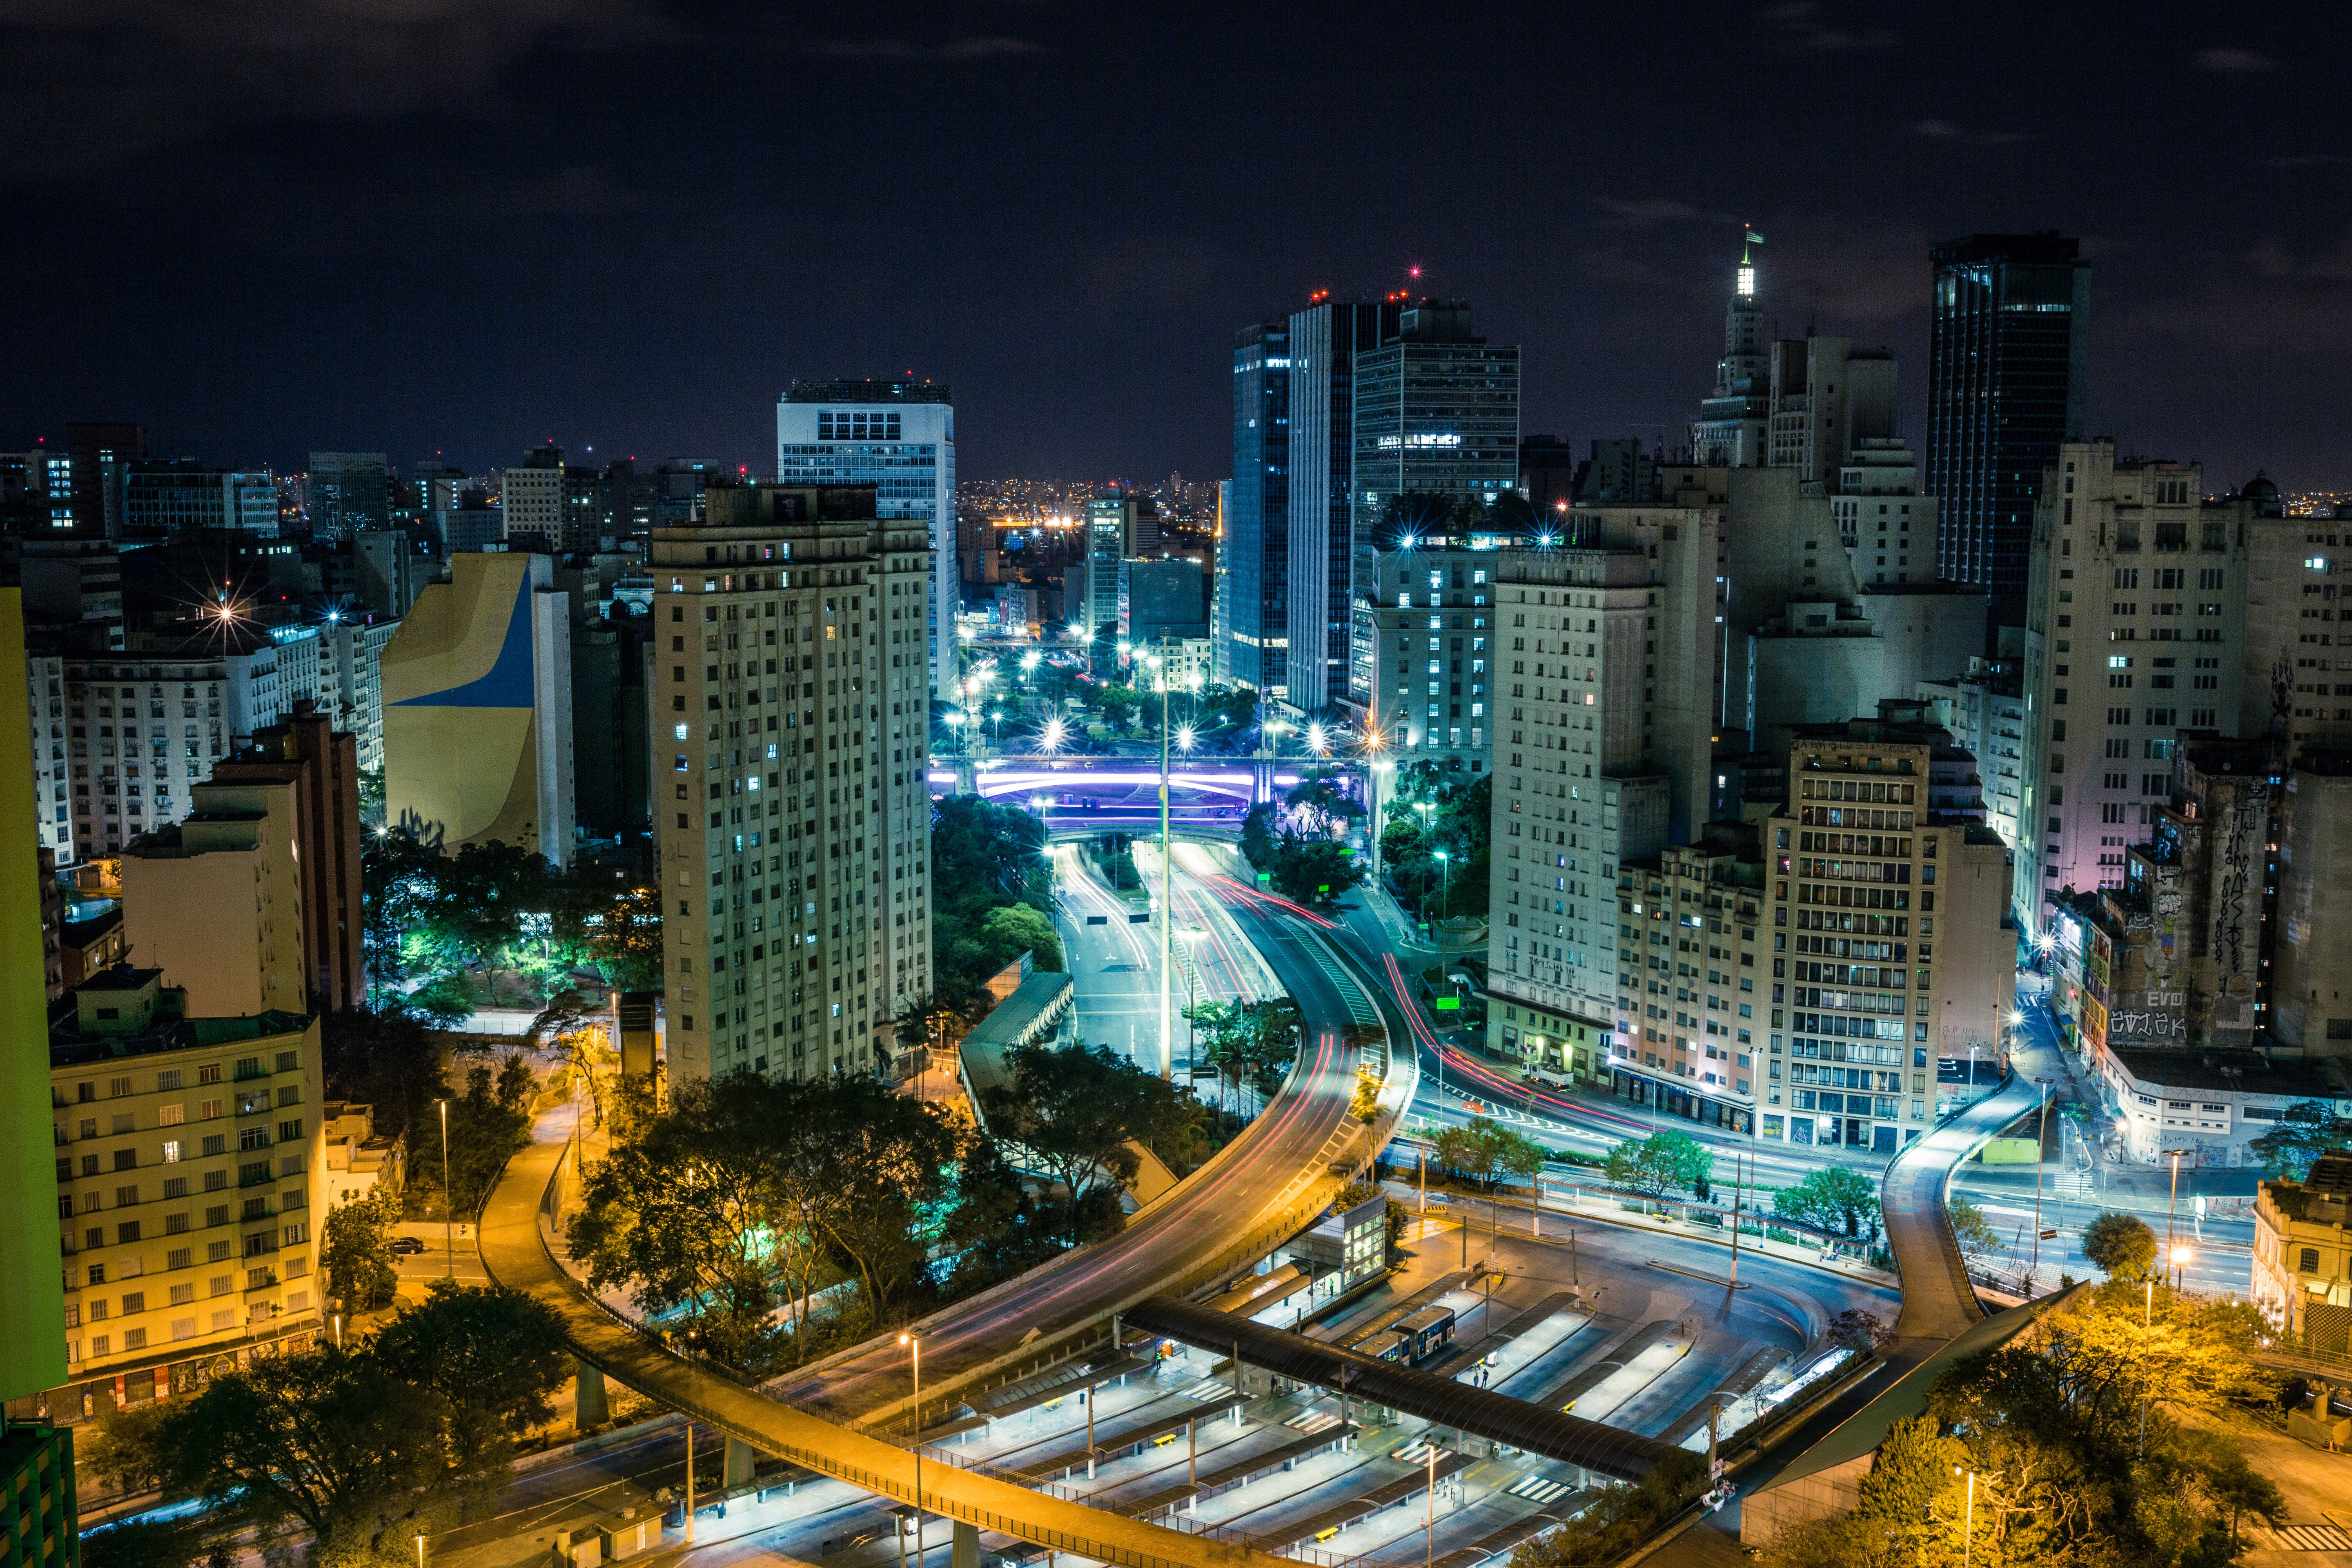 Image of highways in Brazil at night